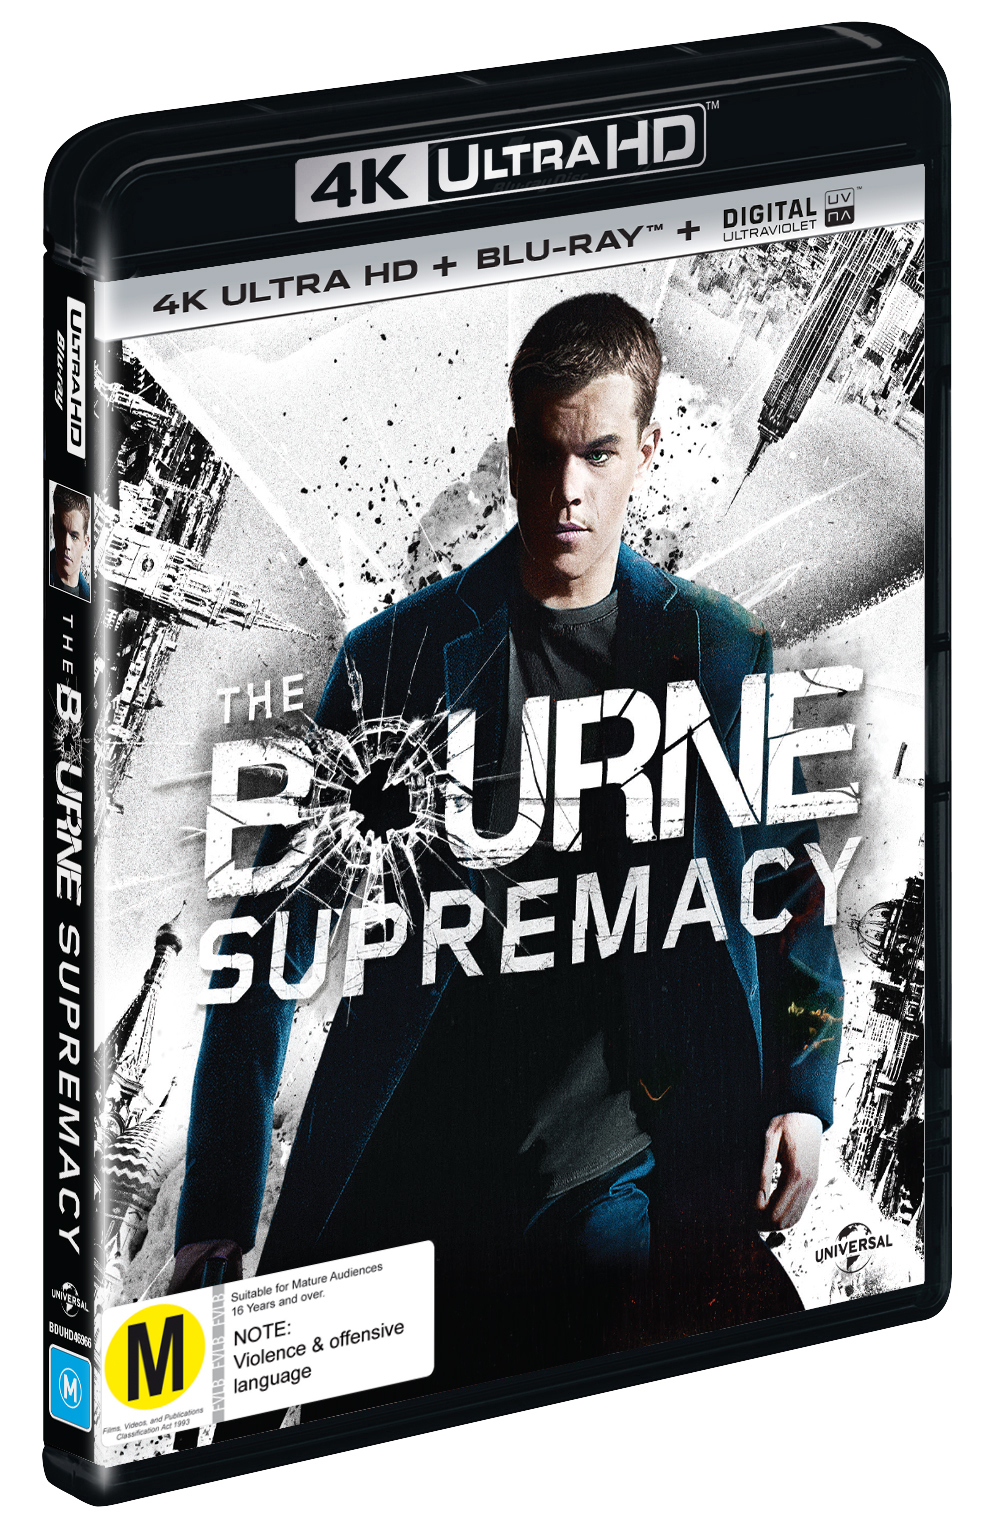 The Bourne Supremacy on Blu-ray, UHD Blu-ray, UV image